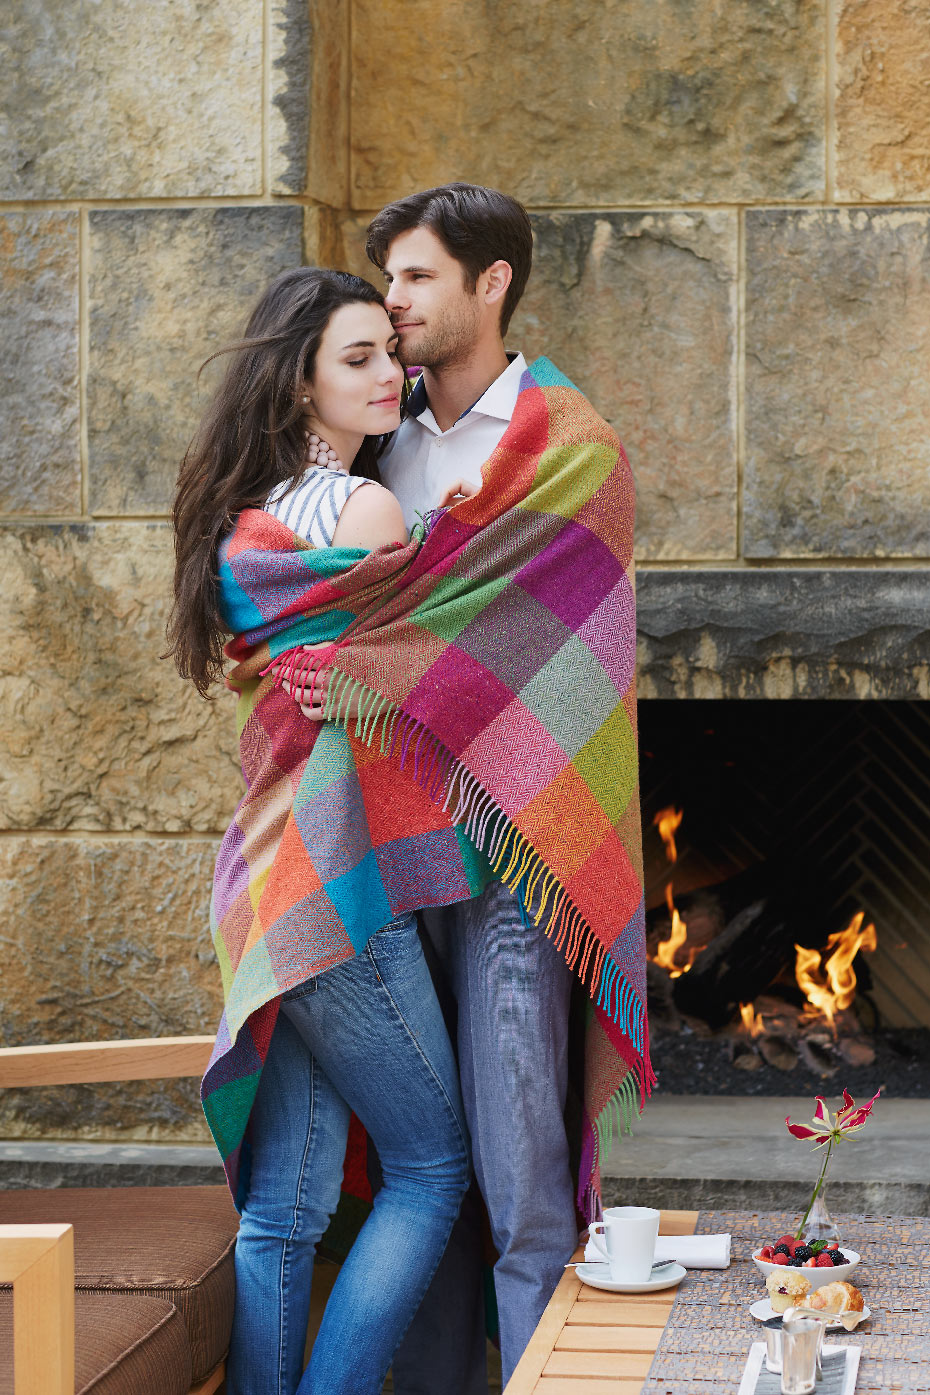 Stacey Van Berkel Photography I Young couple embracing by outdoor fire I Avoca Ireland blanket I The Umstead Hotel and Spa I Cary, North Carolina